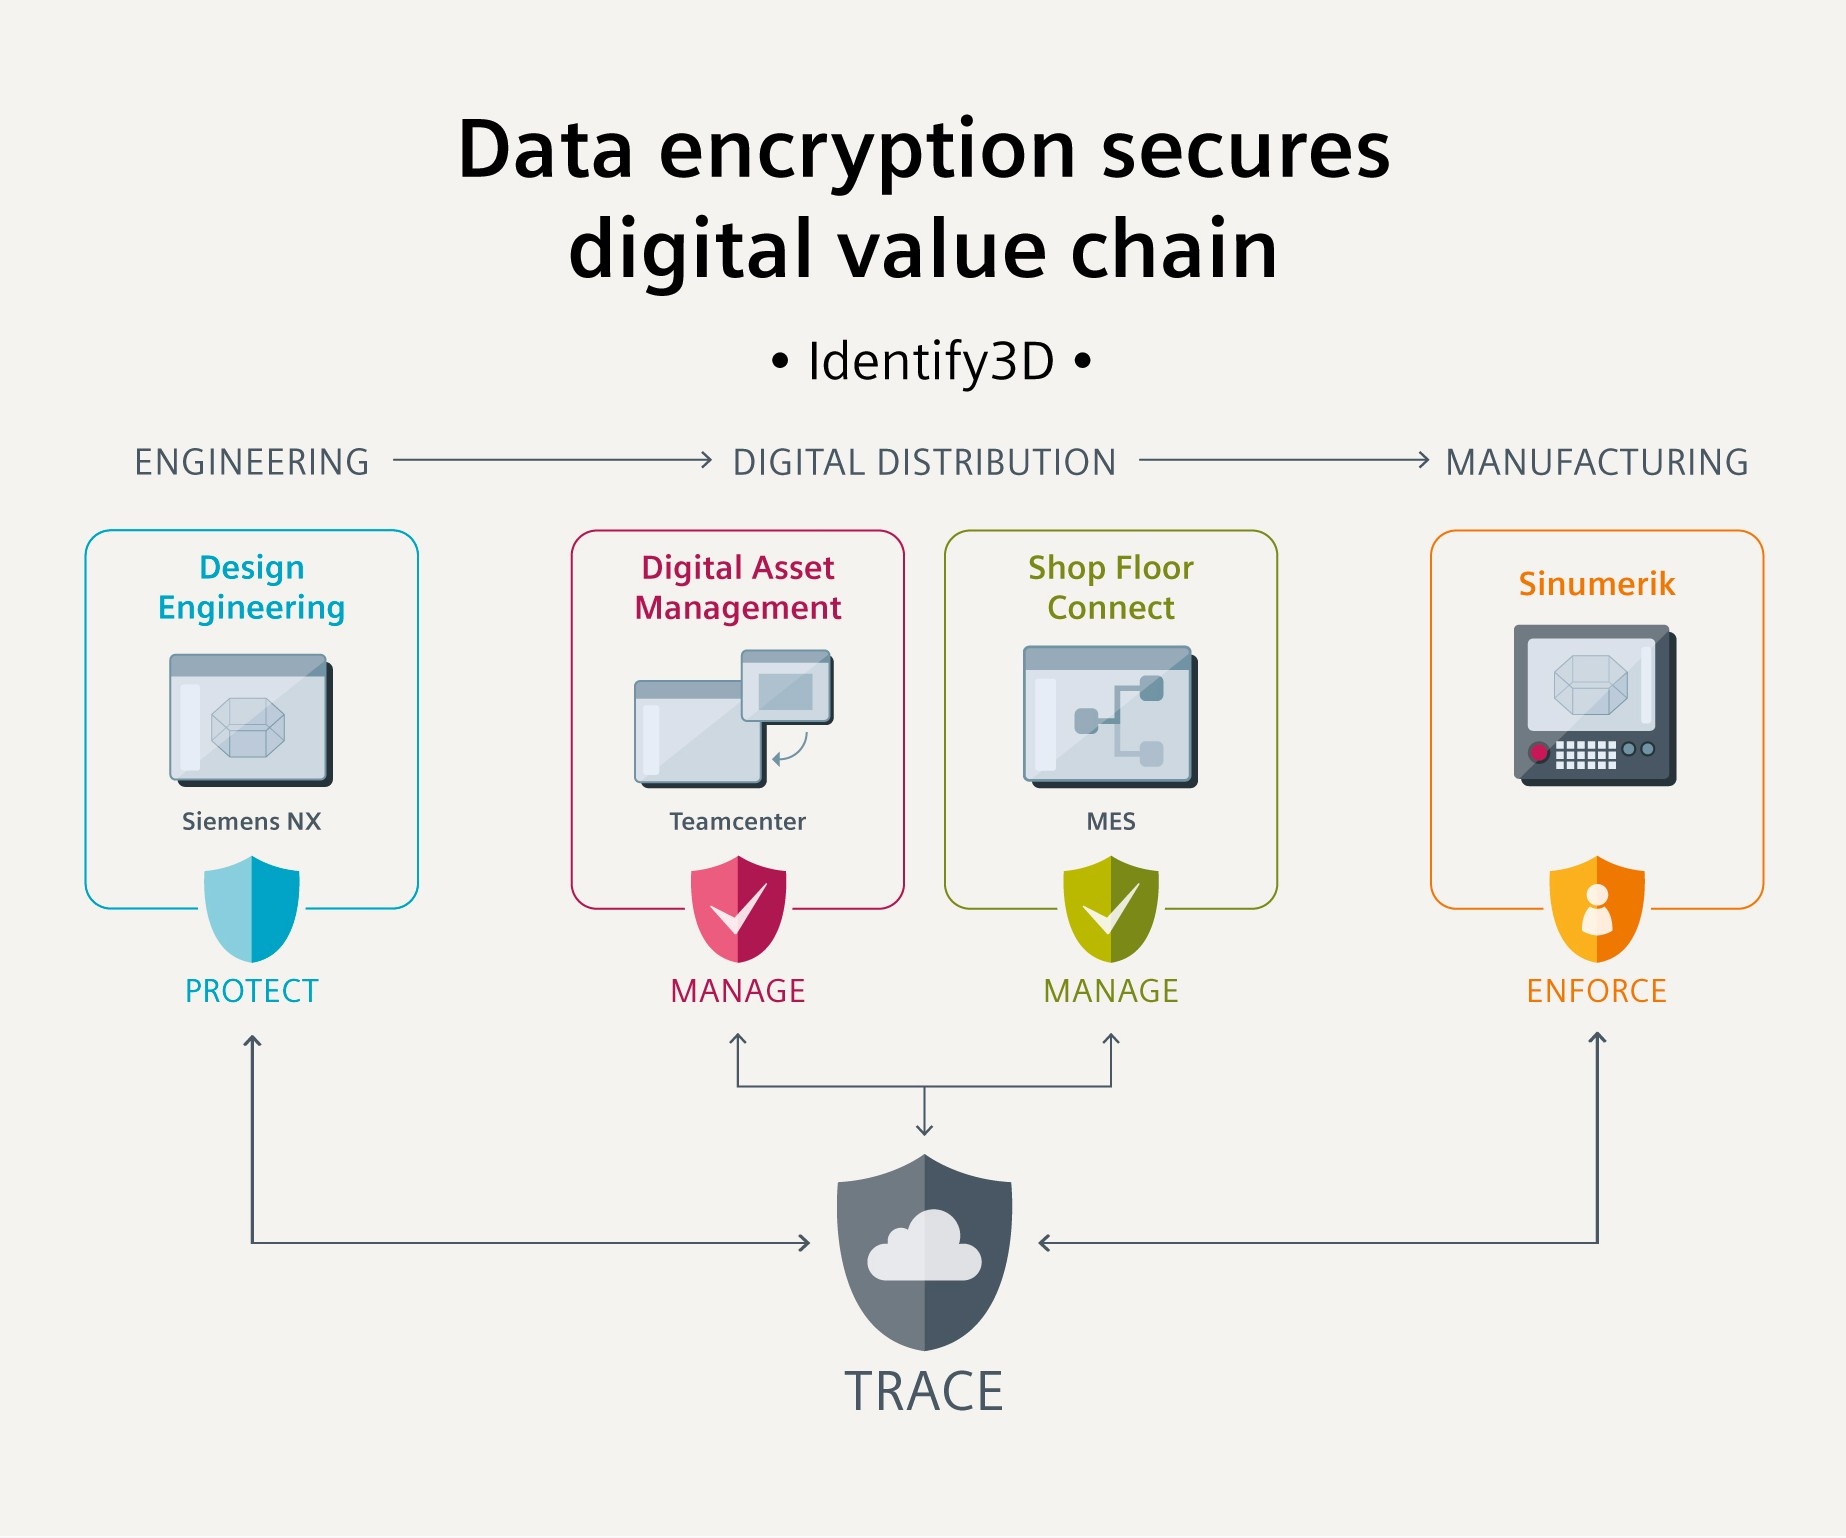 Data encryption secures digital value chain